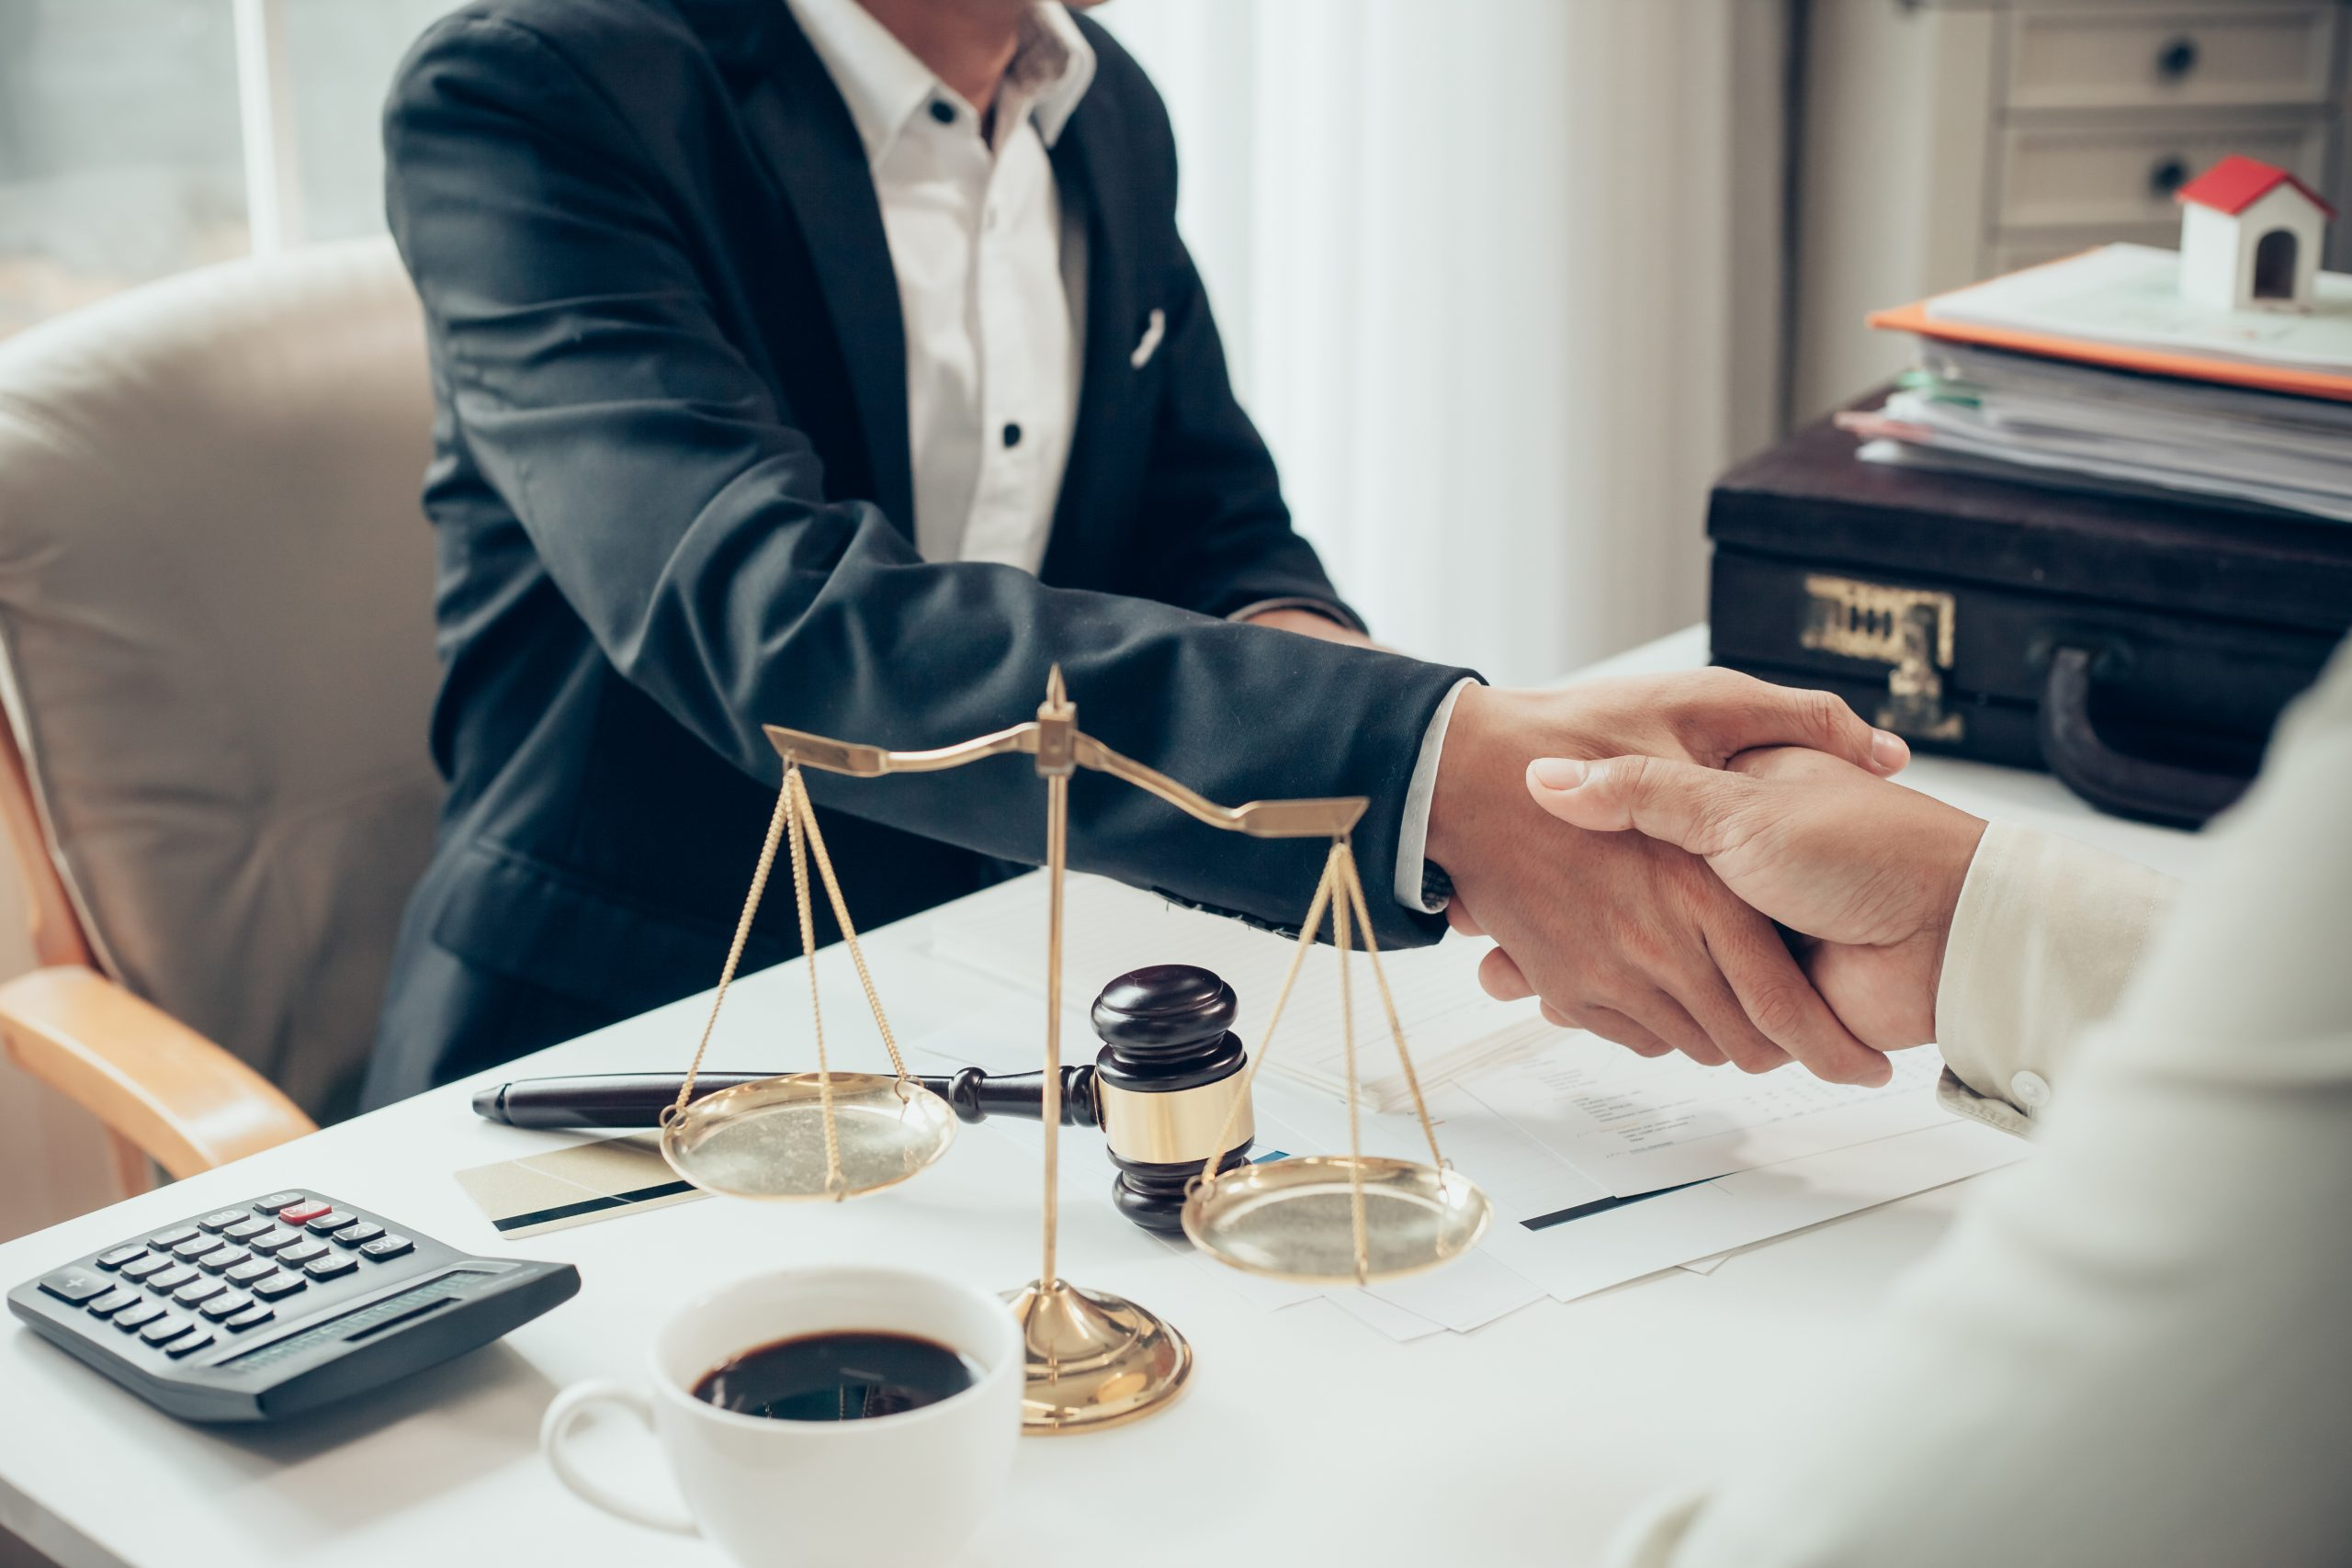 ContractAutomation Empowering In-House Legal Teams